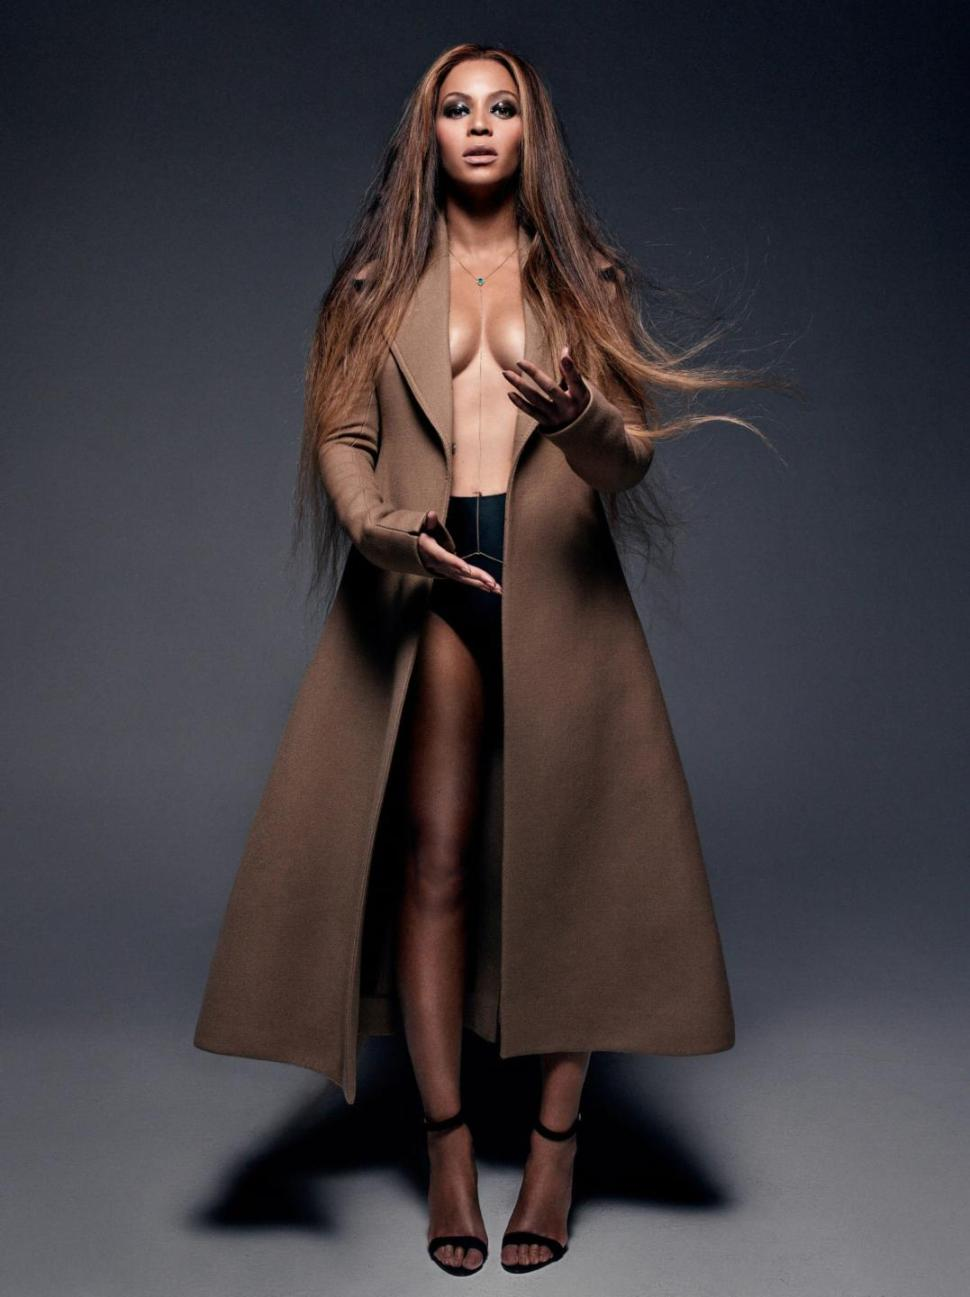 beyonce-cr-fashion-books-cover.jpg